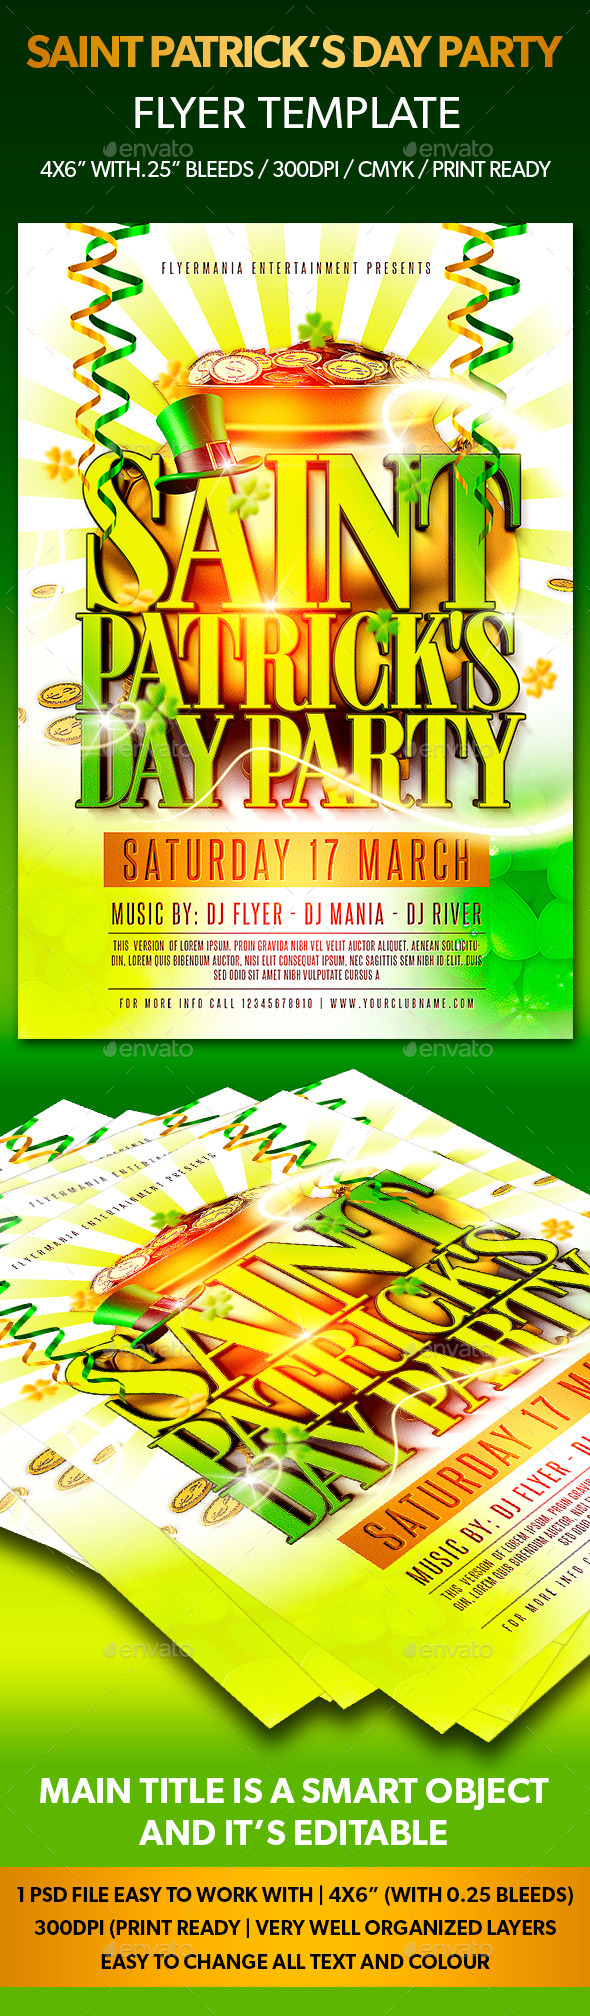 Saint Patrick's Day Party Flyer Template - Flyers Print Templates